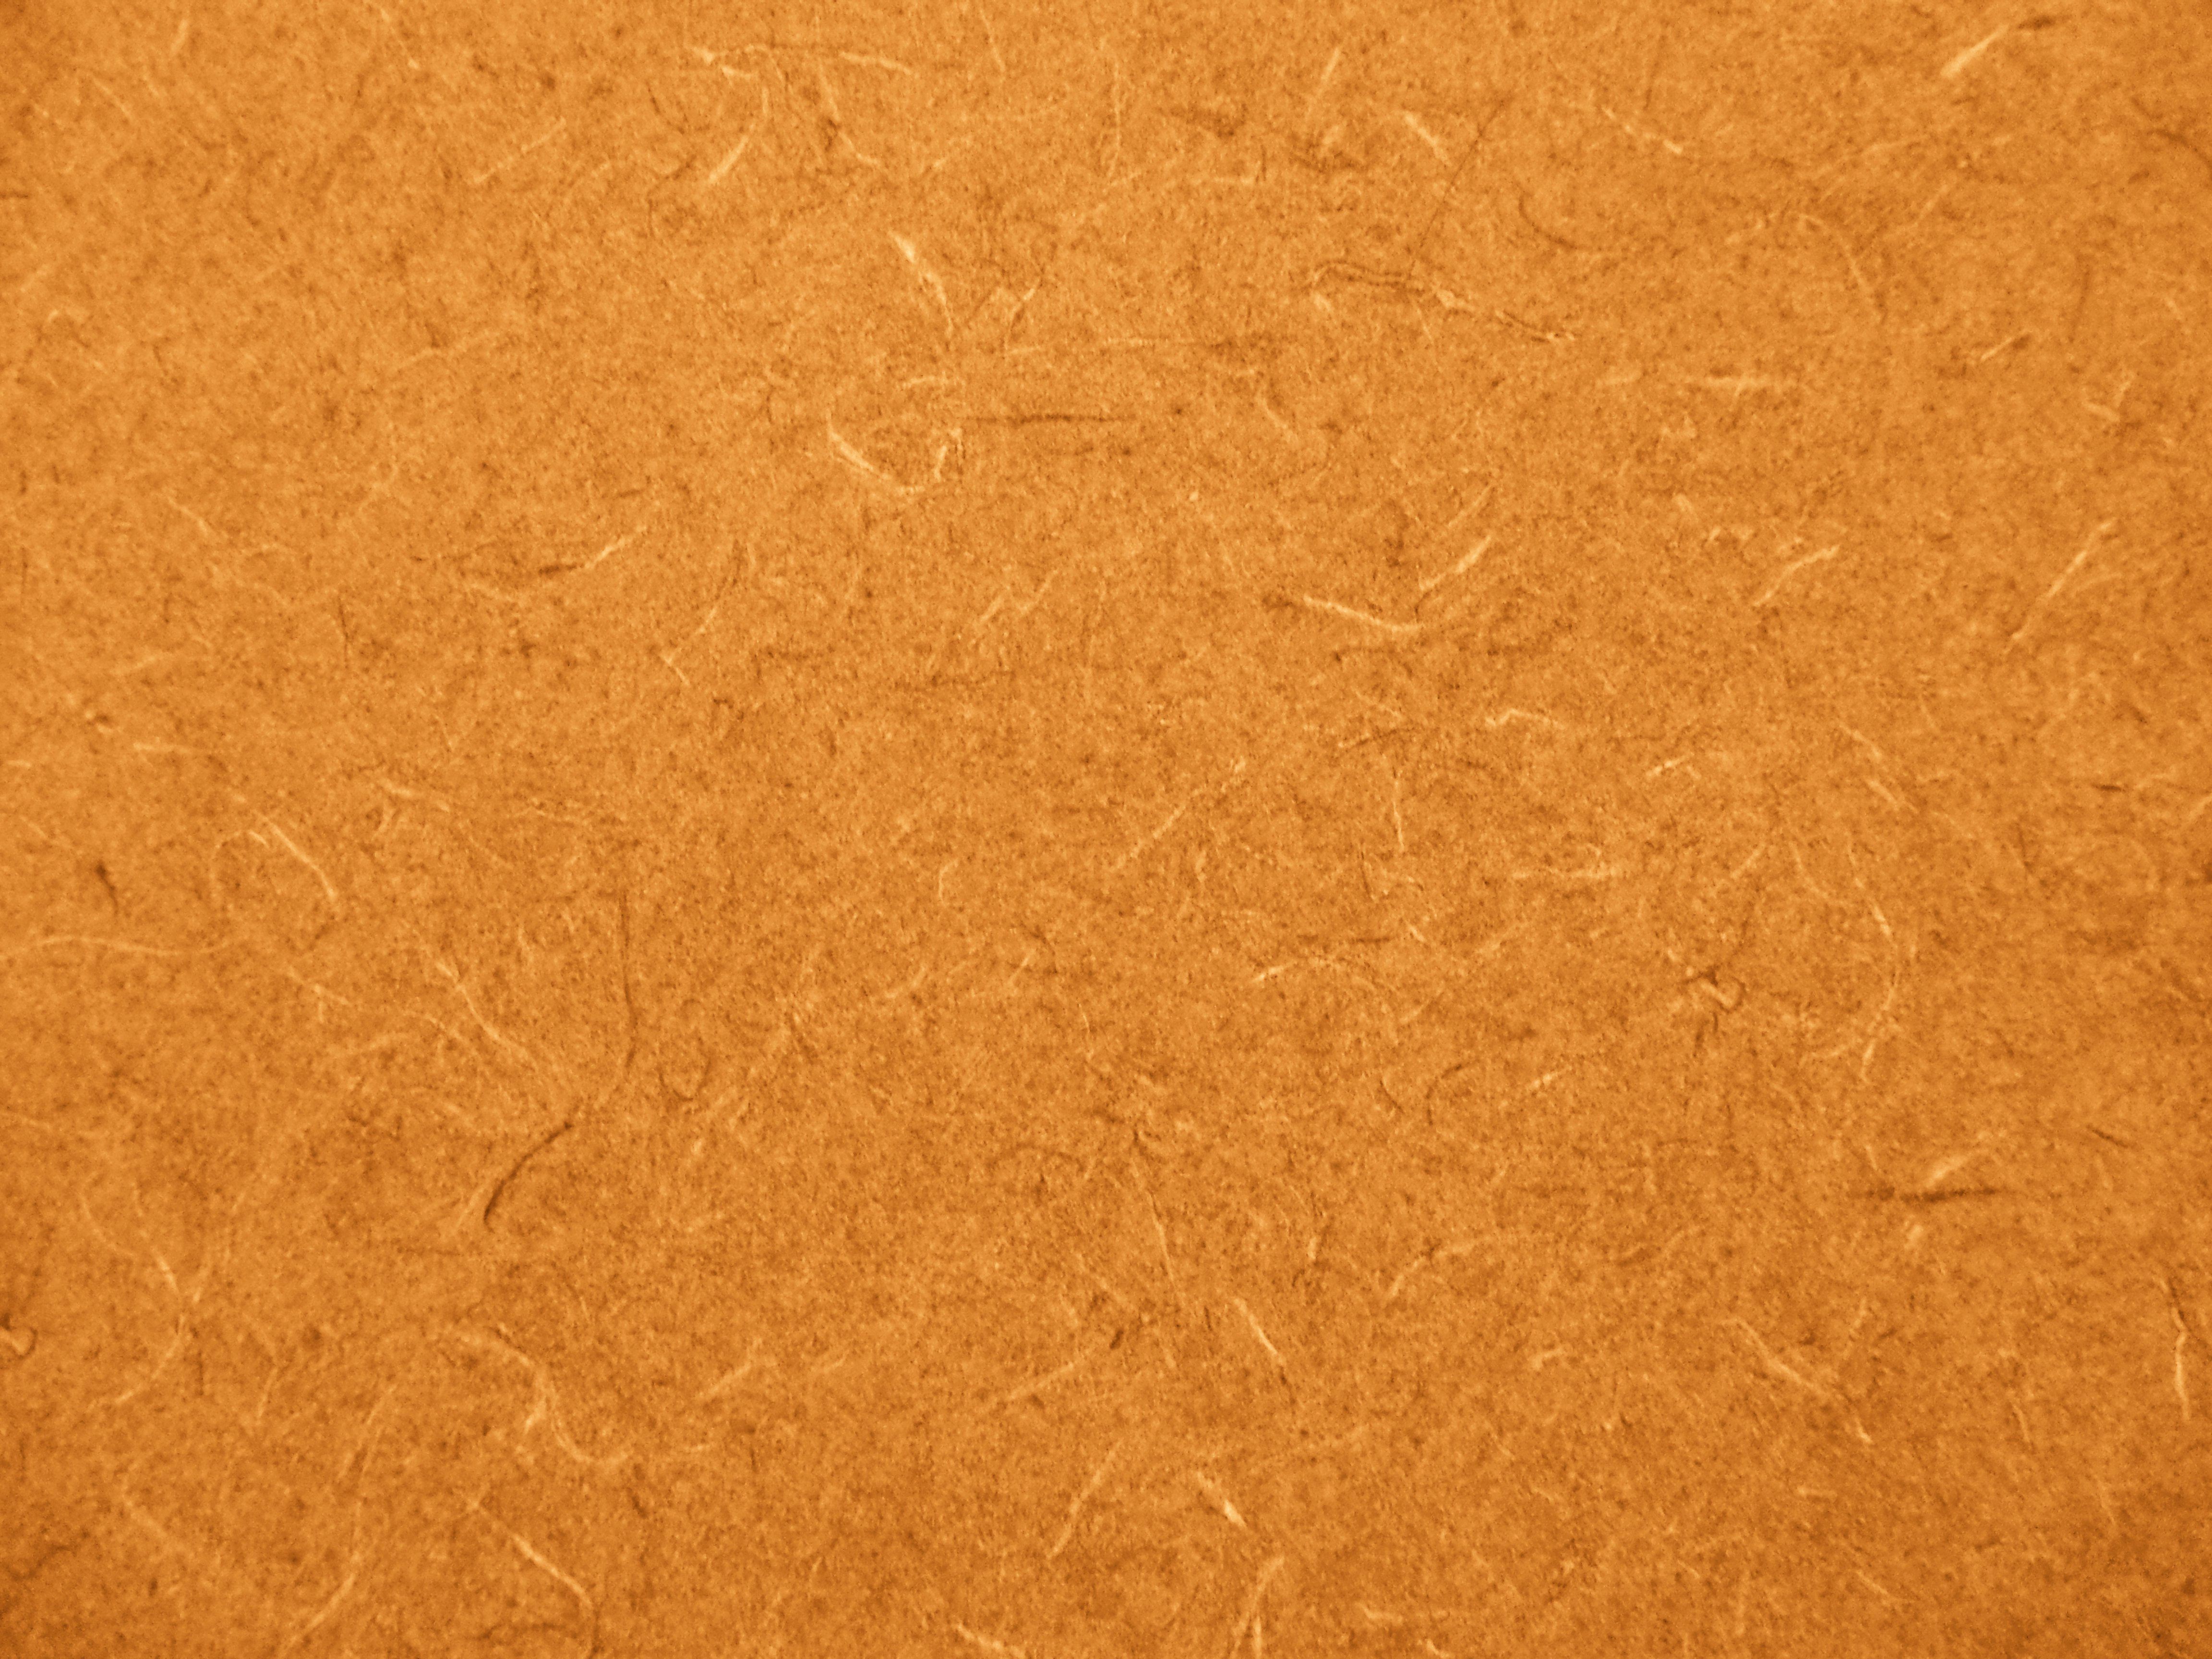 Orange Abstract Pattern Laminate Countertop Texture